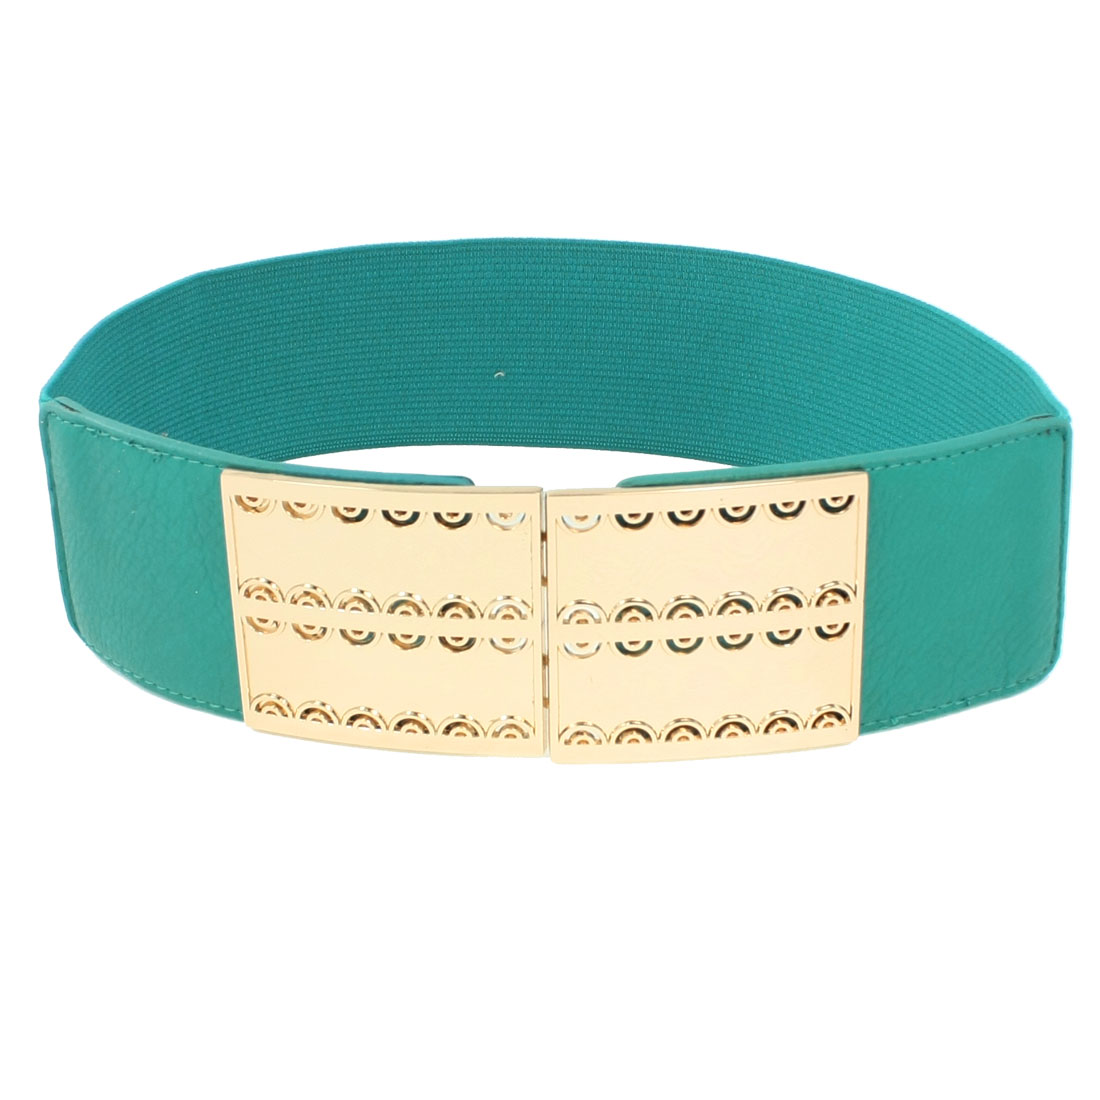 Women Hollow Out Design Metal Buckle Detail Turquoise Textured Spandex Waistbelt